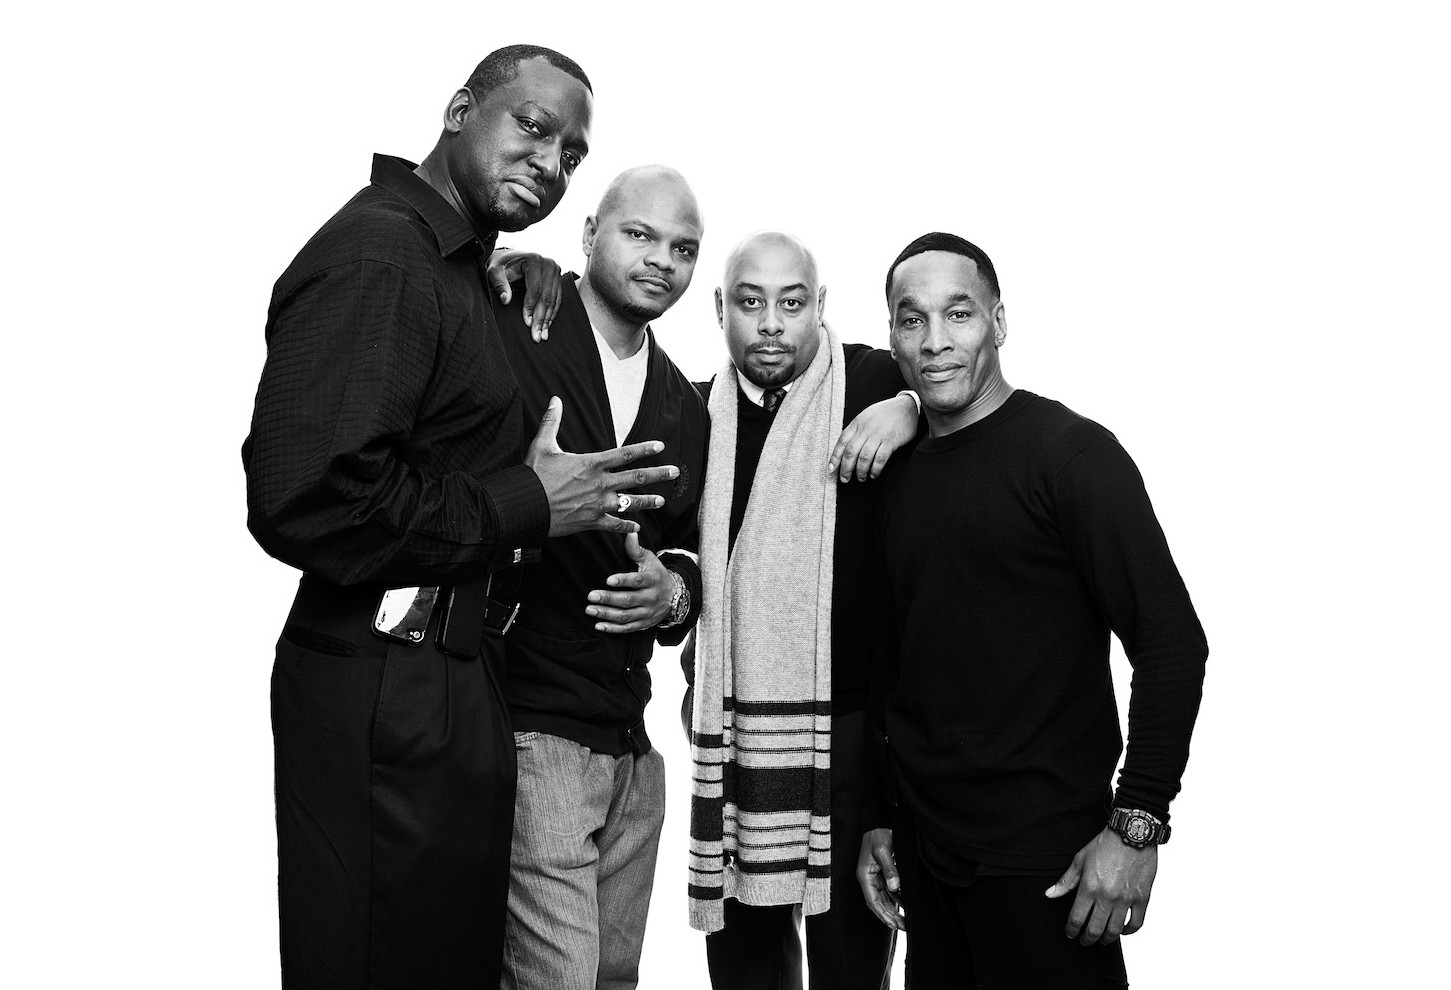 Four of the Central Park 5, Yusef Salaam, Kevin Richardson, Raymond Santana, Korey Wise during an interview with TIME in 2013.